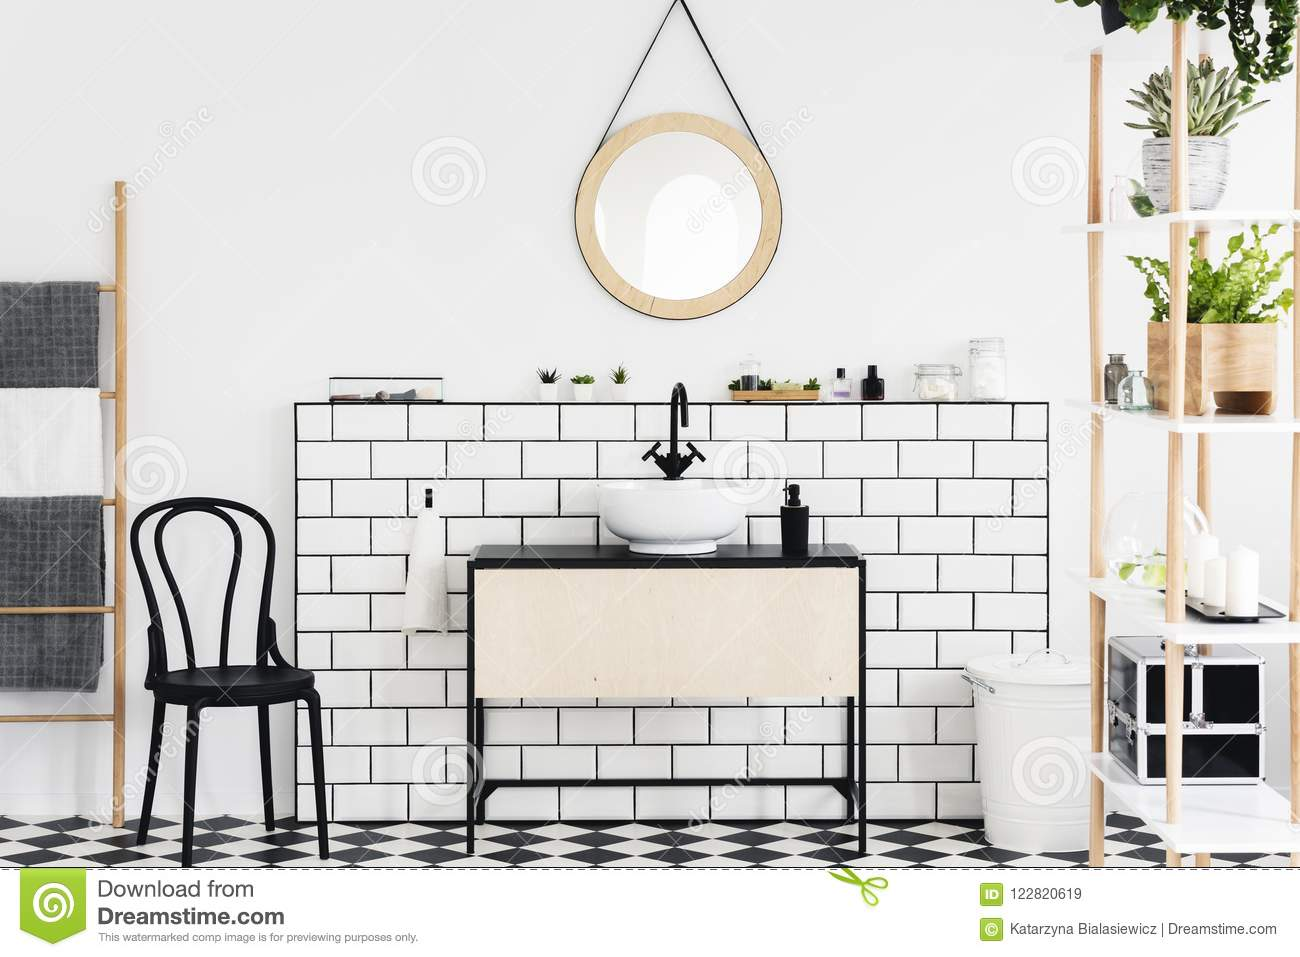 Mirror Above Washbasin In White Bathroom Interior With Plants And Black Chair Next To Ladder Real Photo Stock Image Image Of Checkered Wooden 122820619